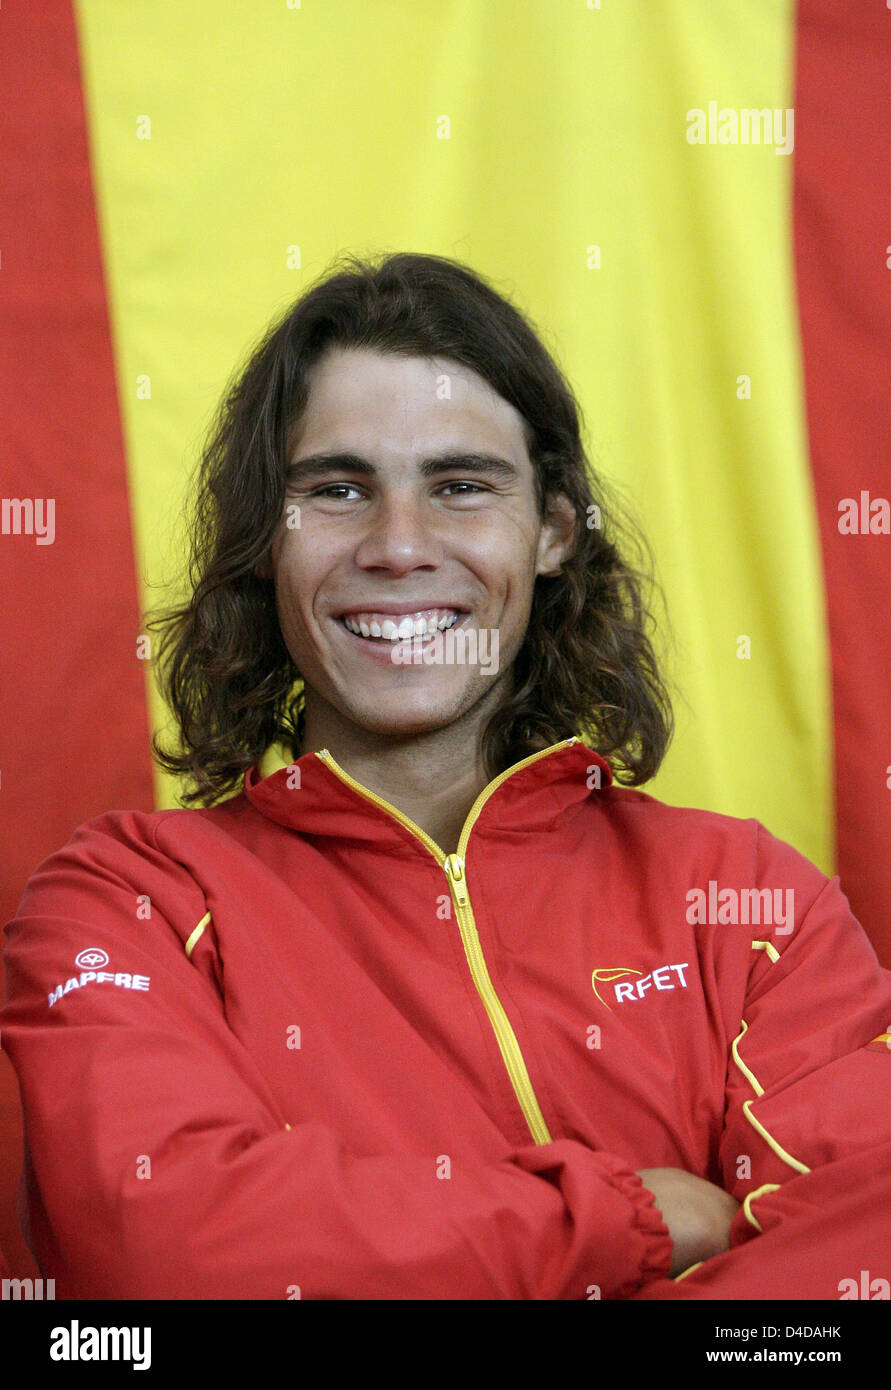 Rafael Nadal Of Spain Smiles After The Match Drawings In Bremen Stock Photo Alamy